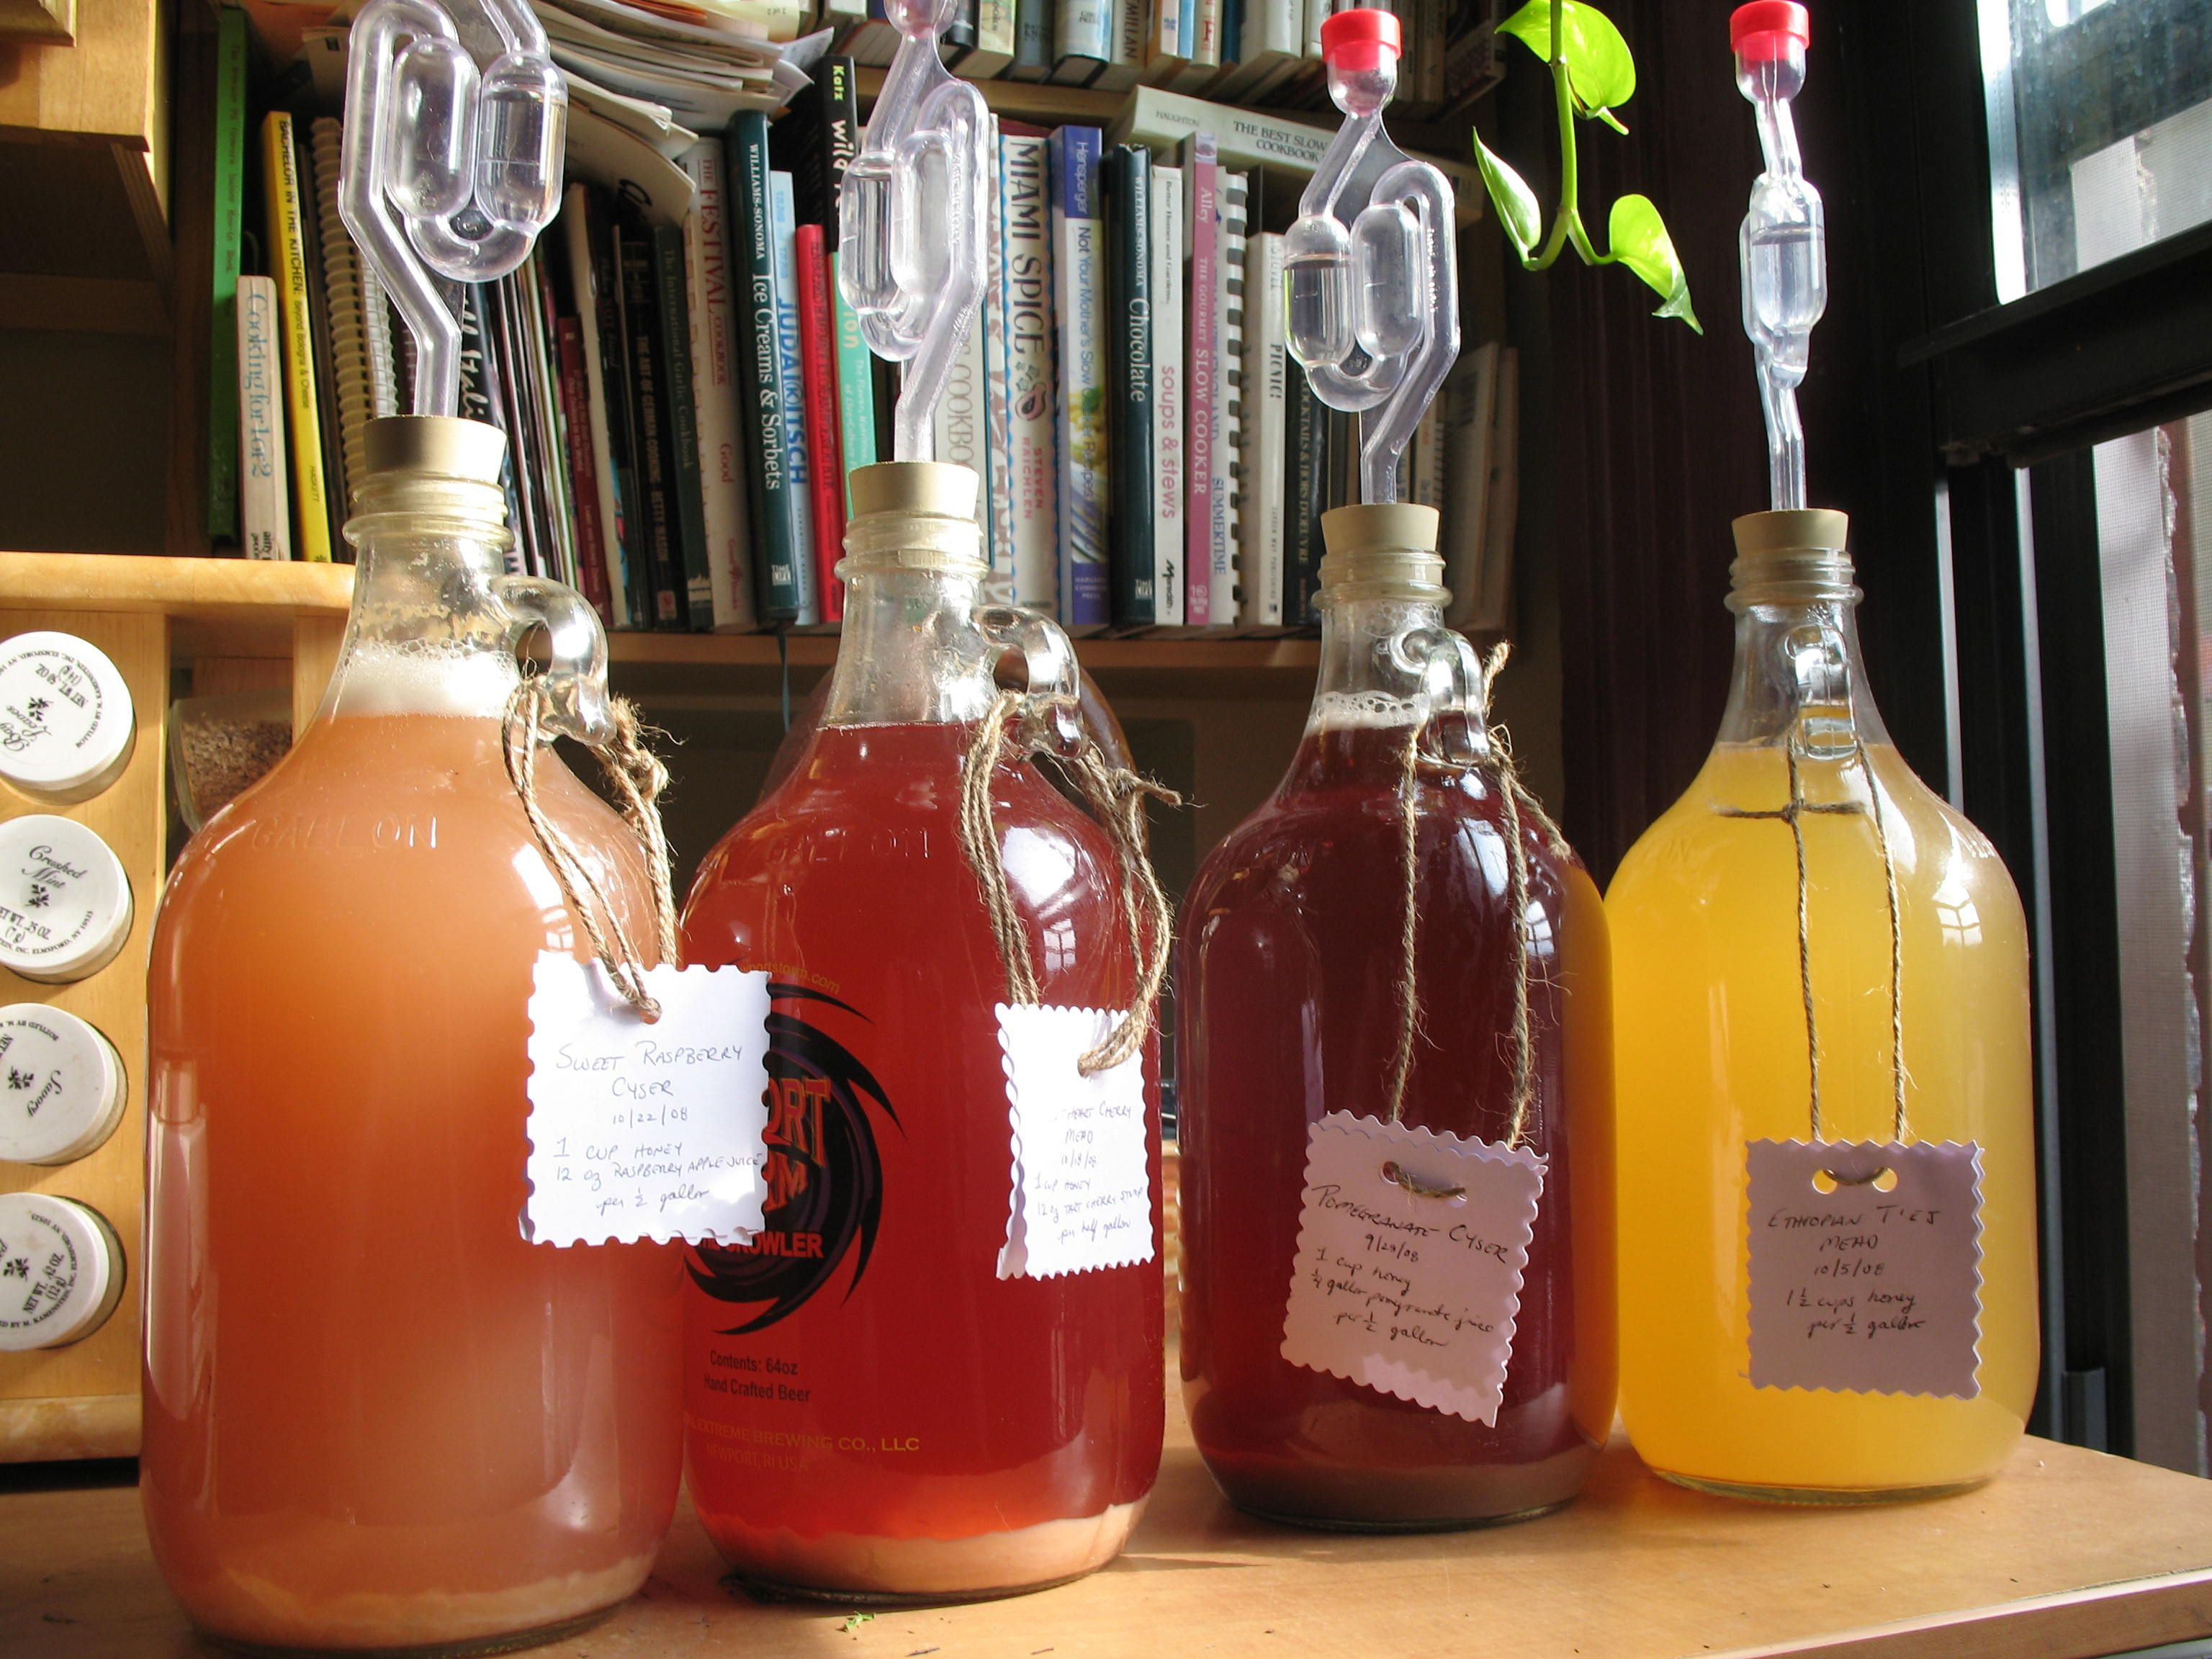 Meads And Cysers And Ciders Oh My Mead Fruit Wine Cider